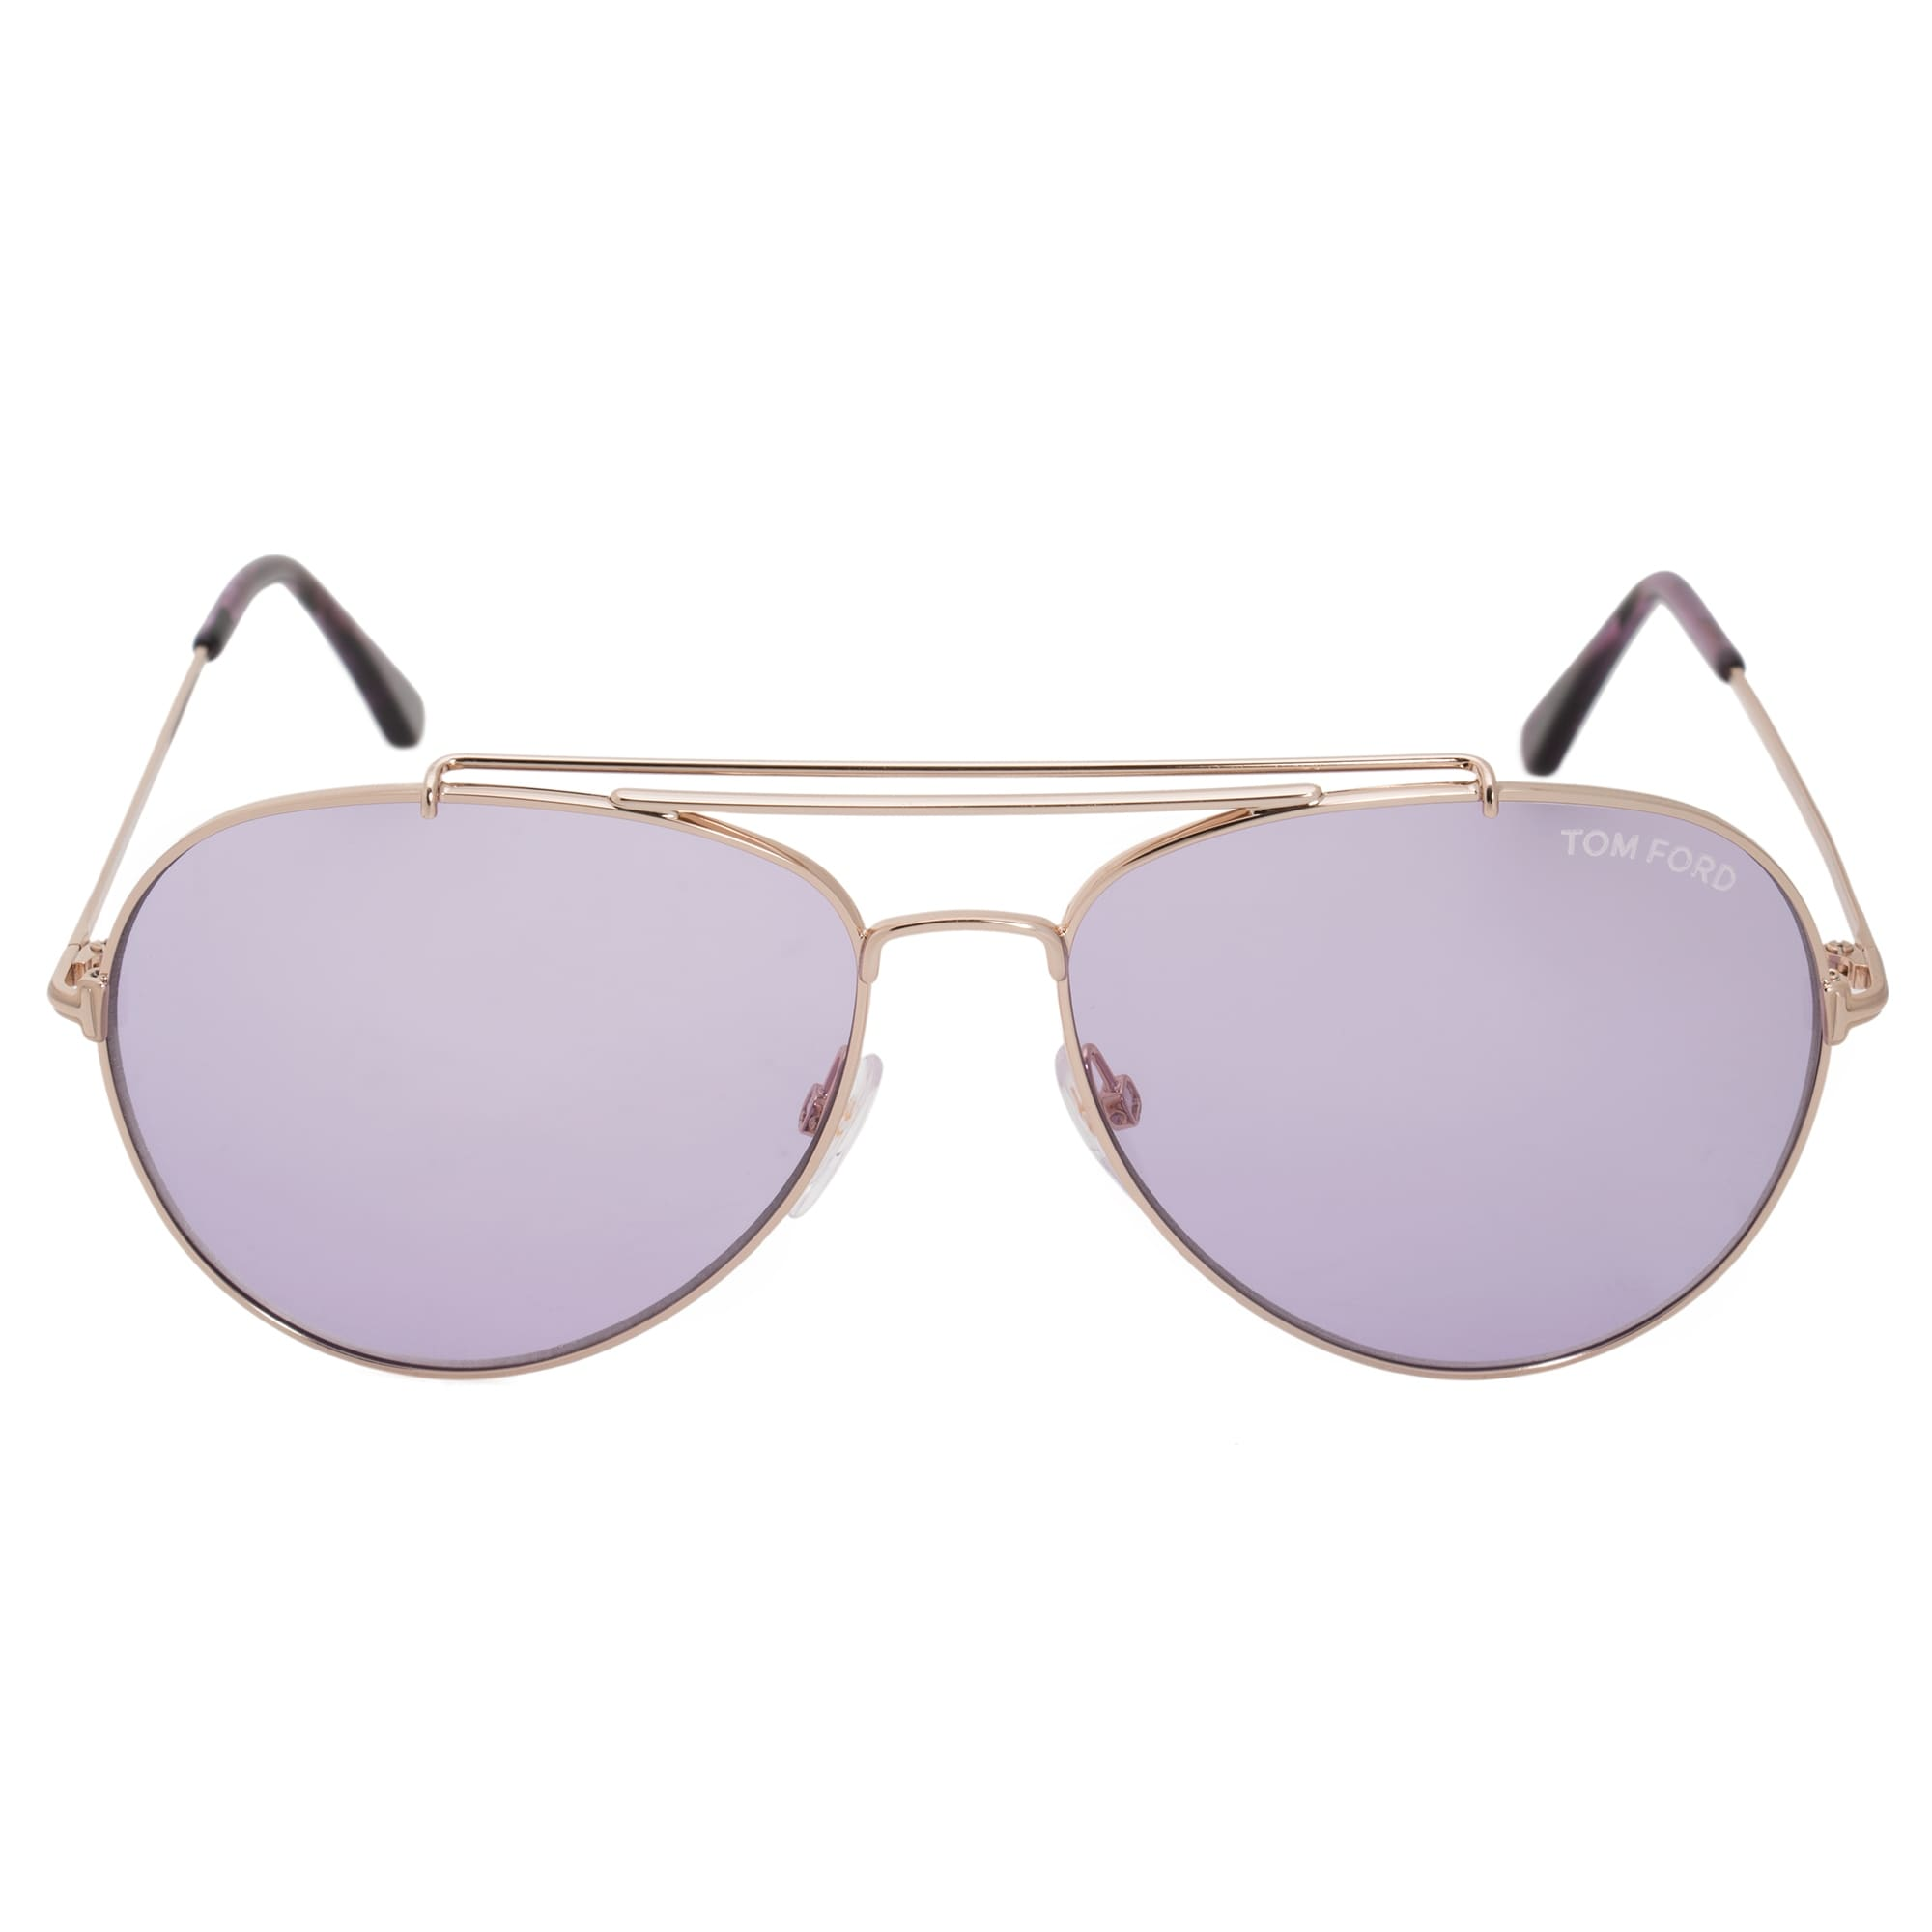 306f793cf0ea Shop Tom Ford Indiana Aviator Sunglasses FT0497 28Y 60 - Free Shipping  Today - Overstock.com - 19622611